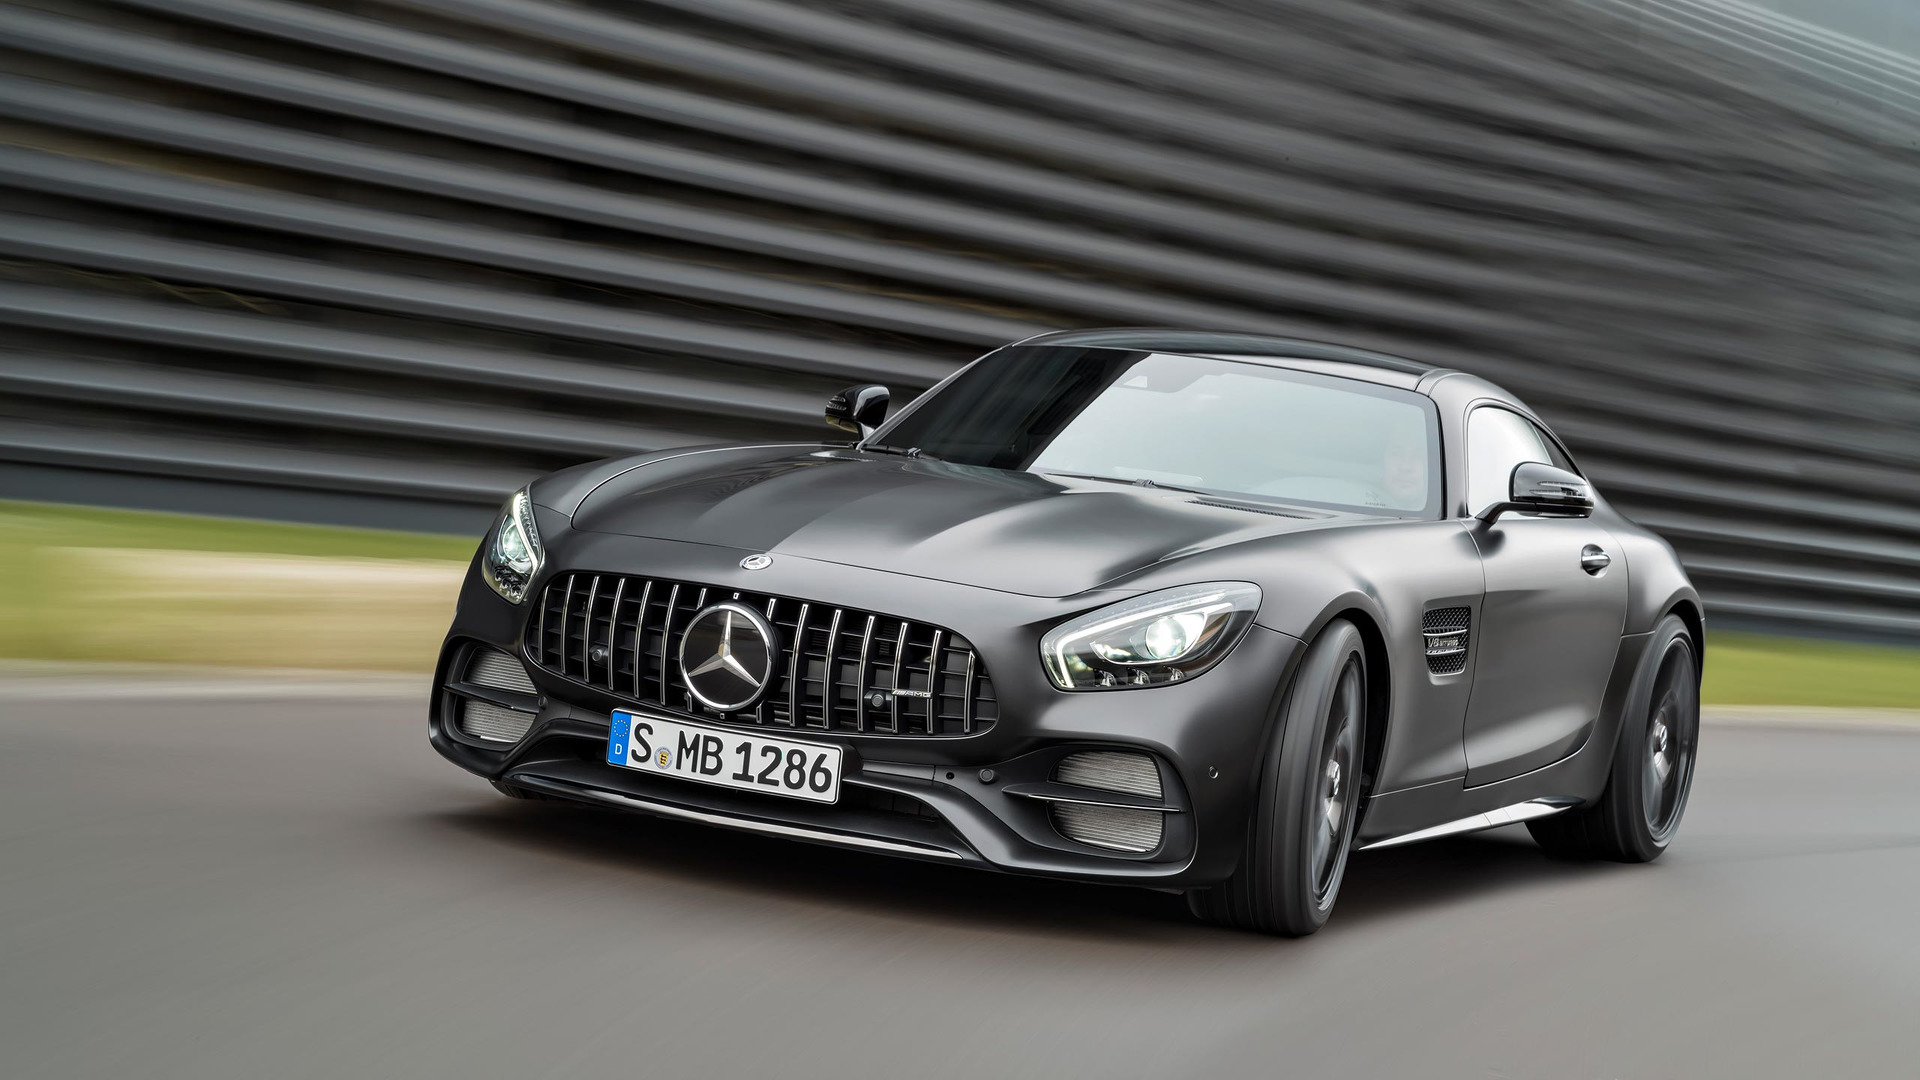 Mercedes Benz Amg Gt >> Mercedes Benz Amg Gt C News And Reviews Motor1 Com